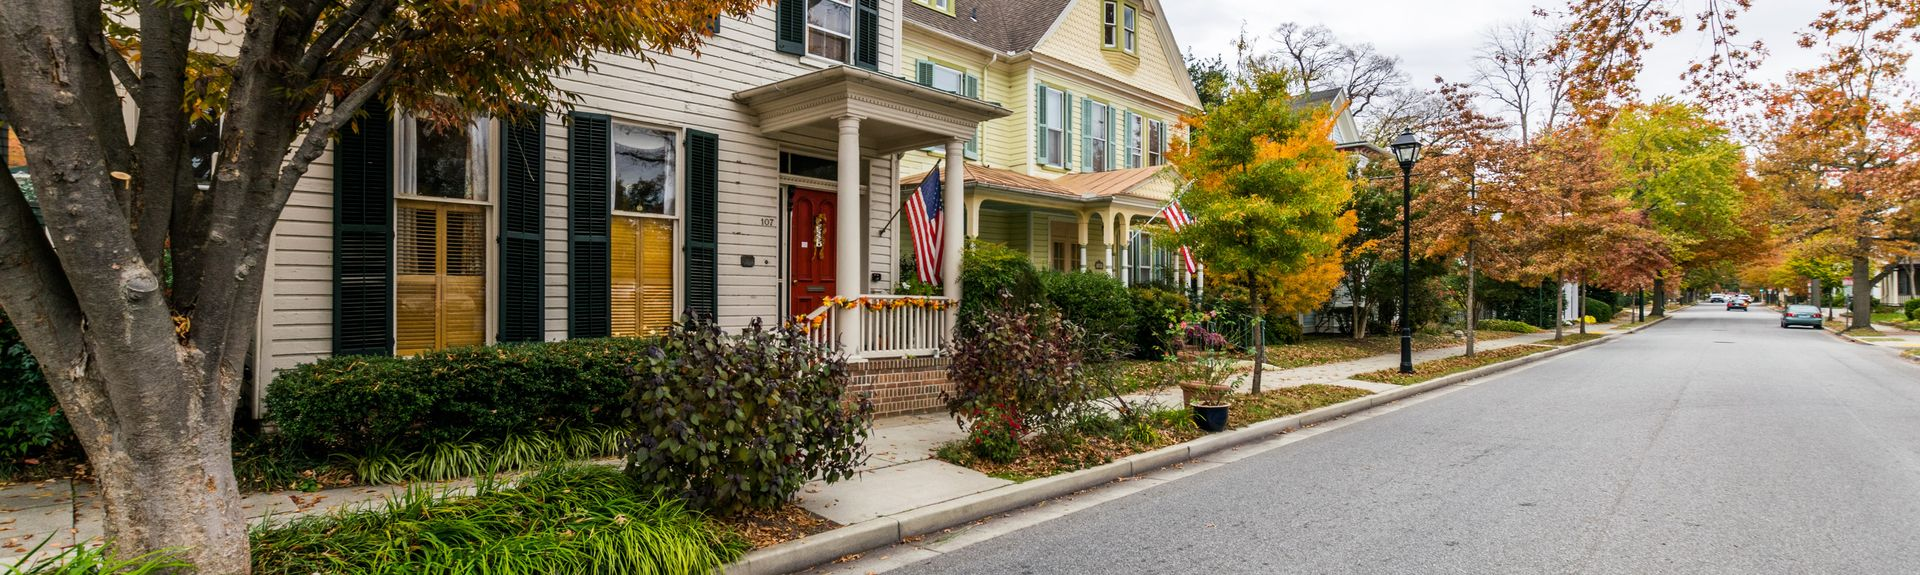 Vrbo® | Easton, MD Vacation Rentals: Reviews & Booking